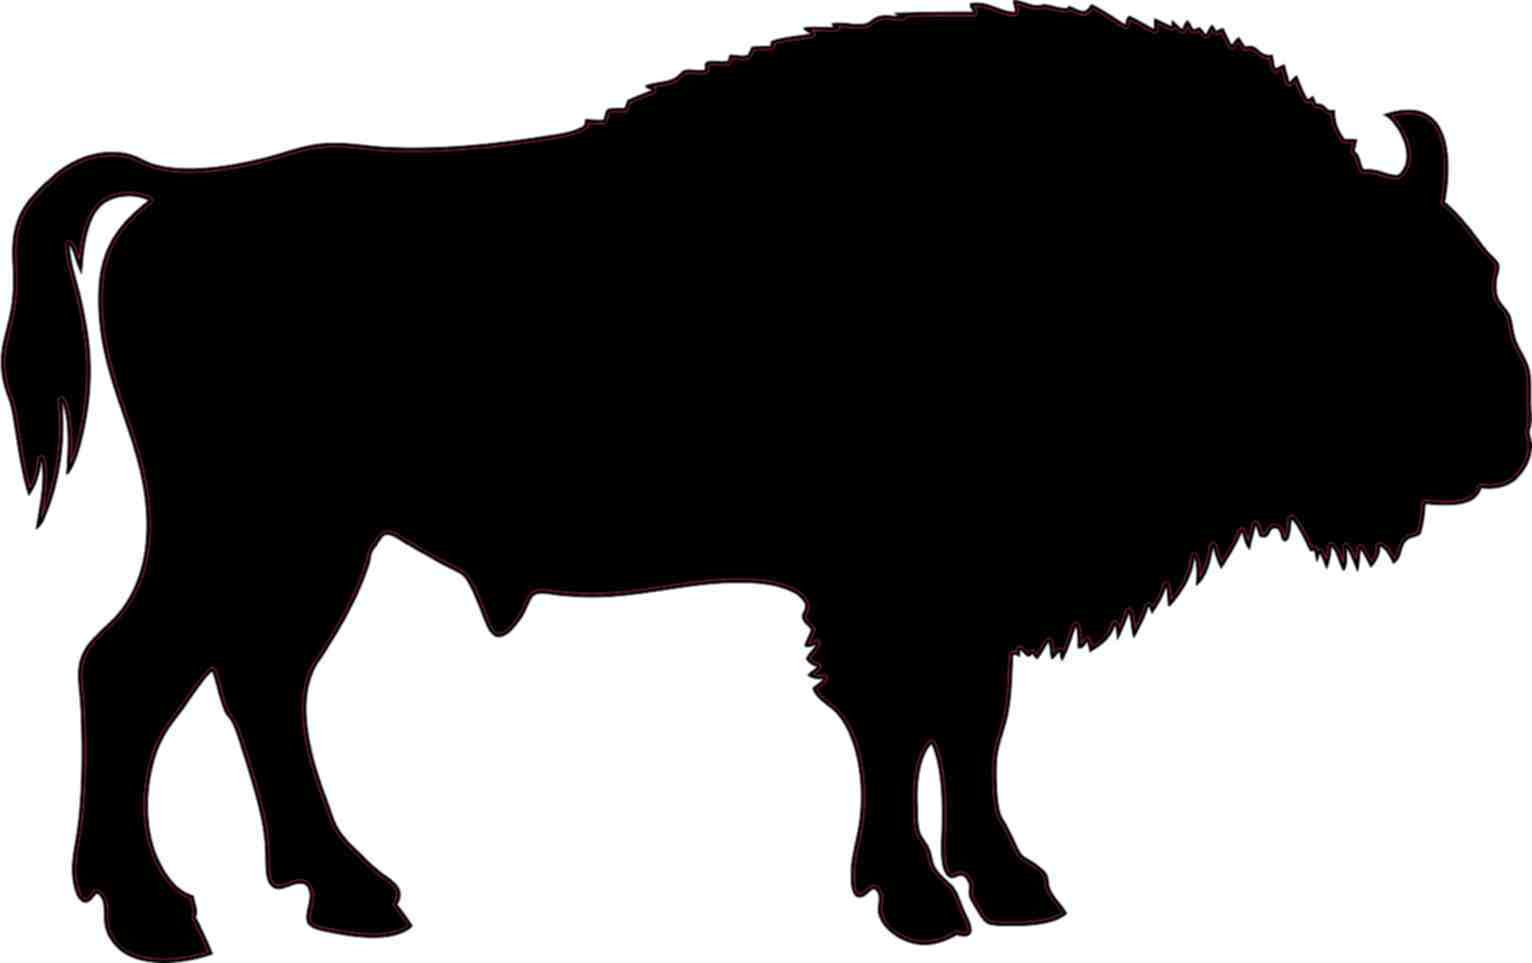 Buffalo Silhouette Images